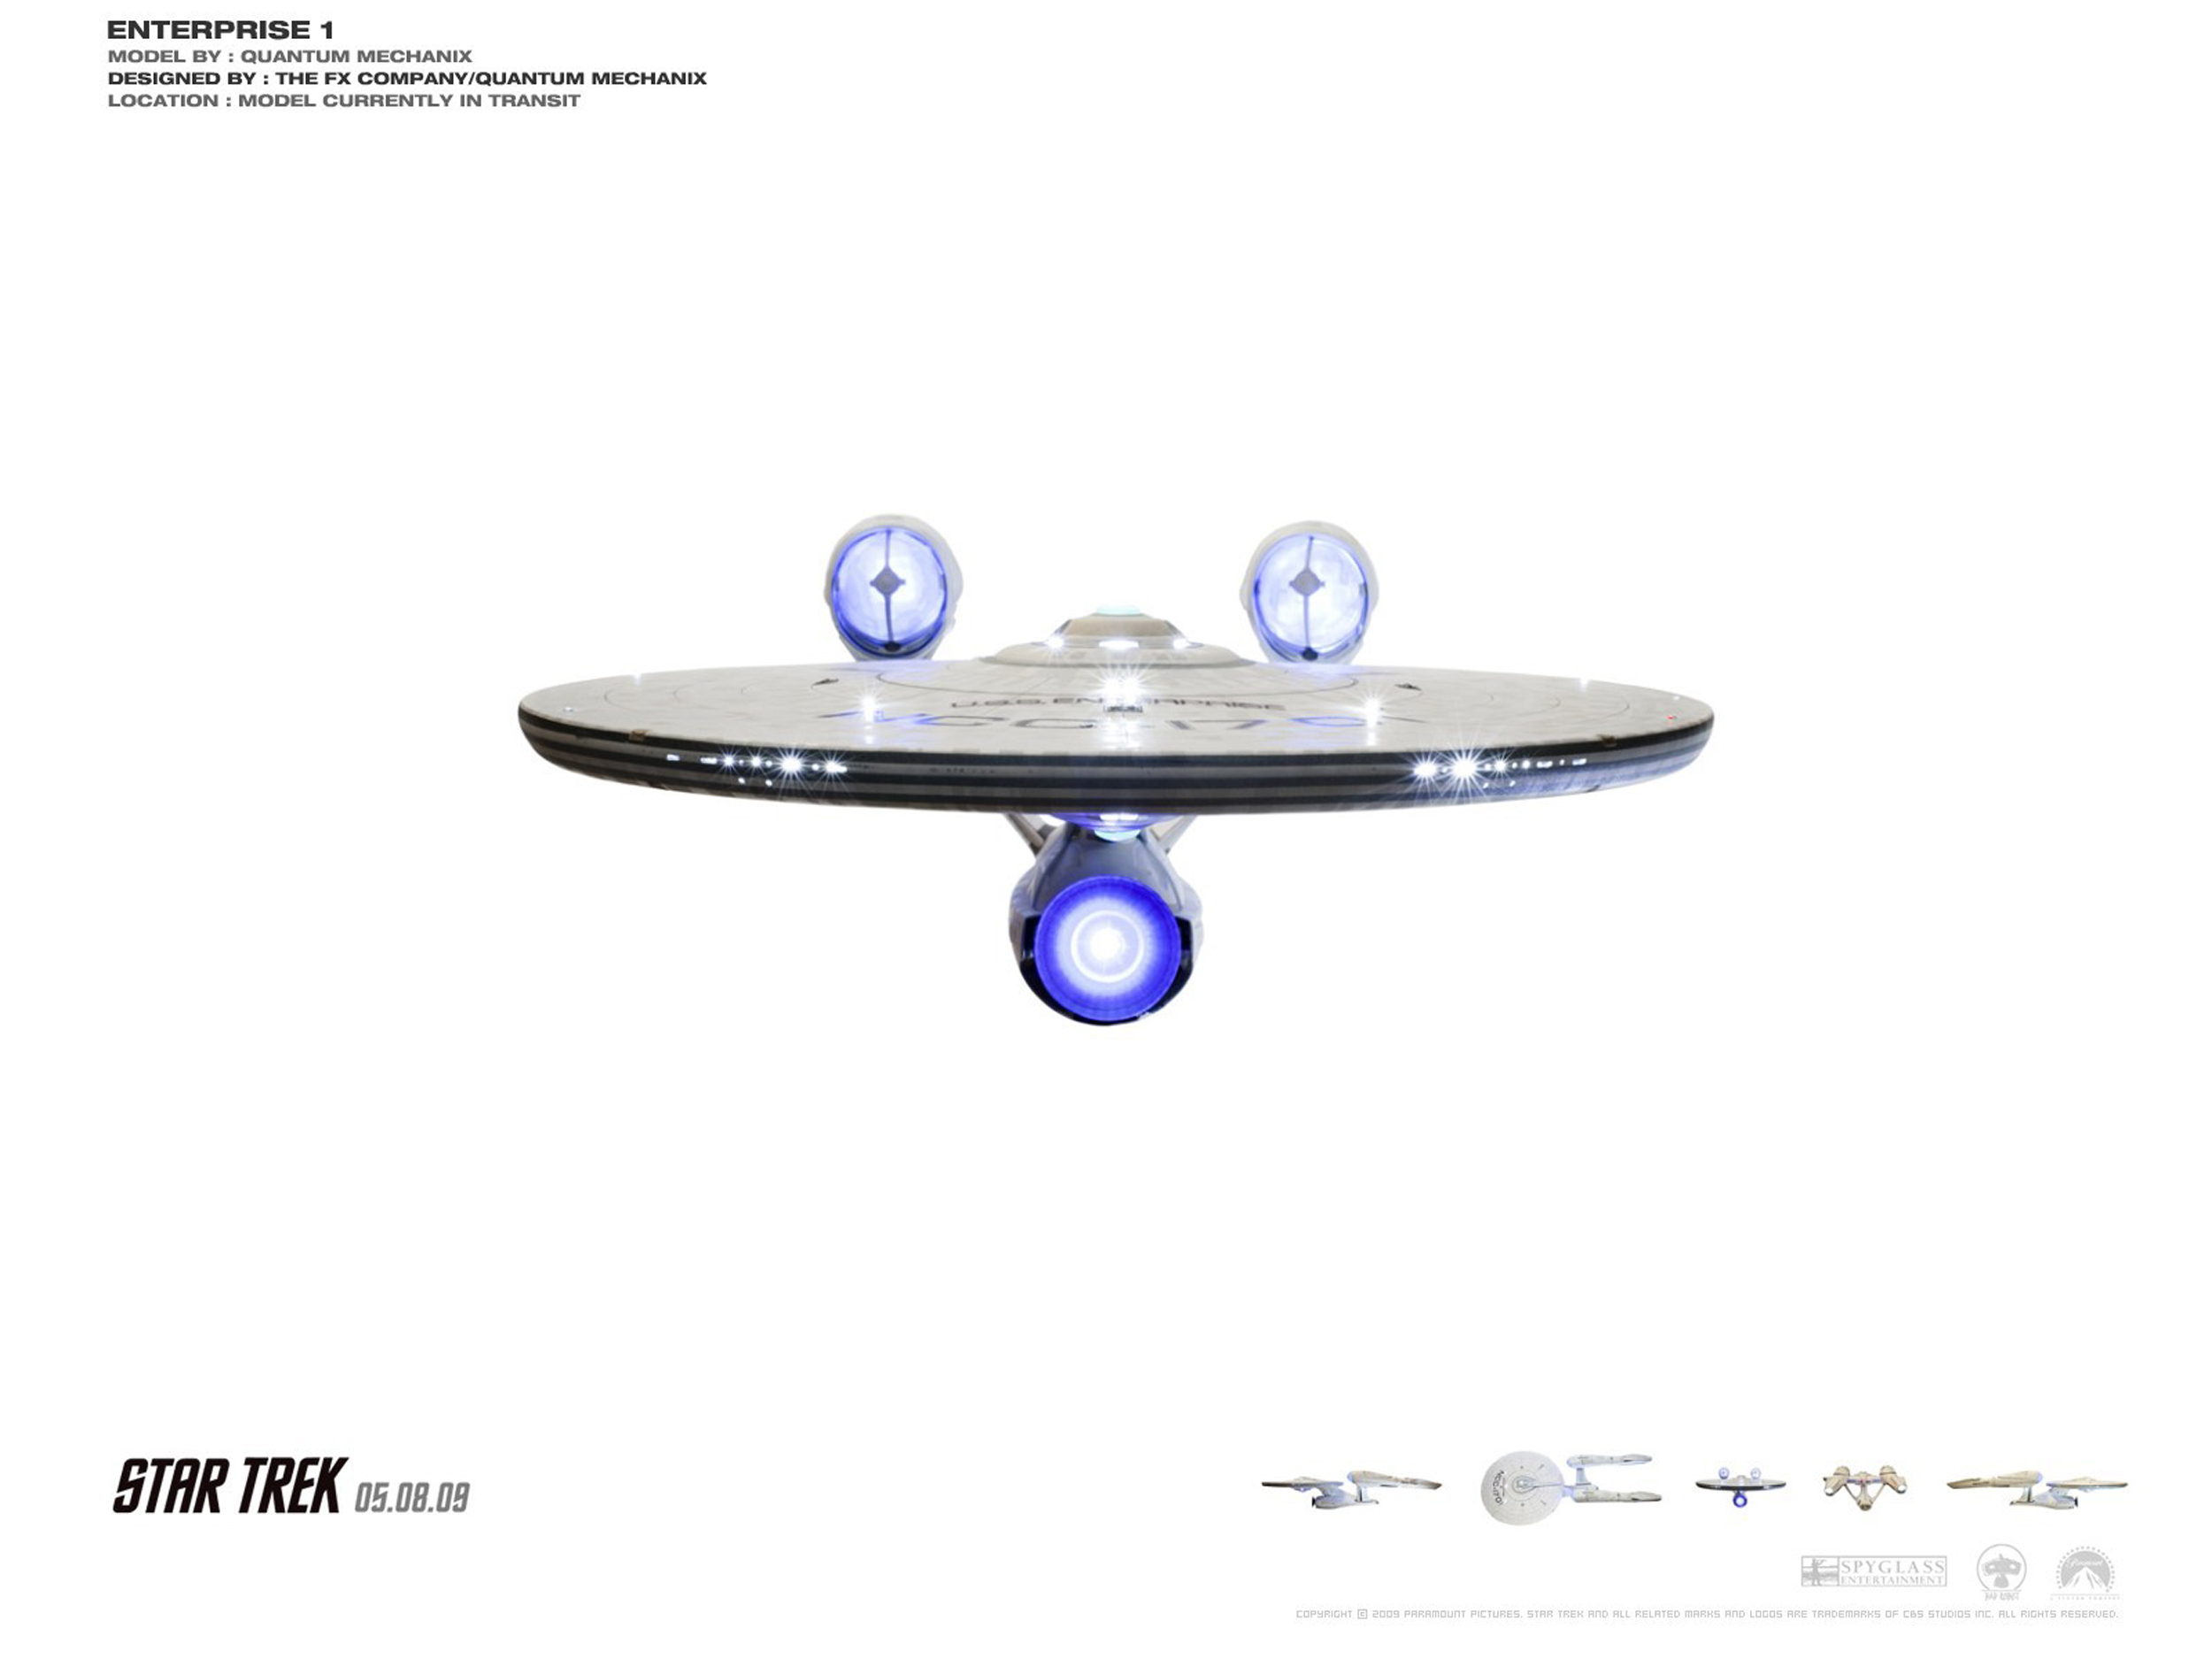 Star Trek Blueprints New U S S Enterprise Ncc